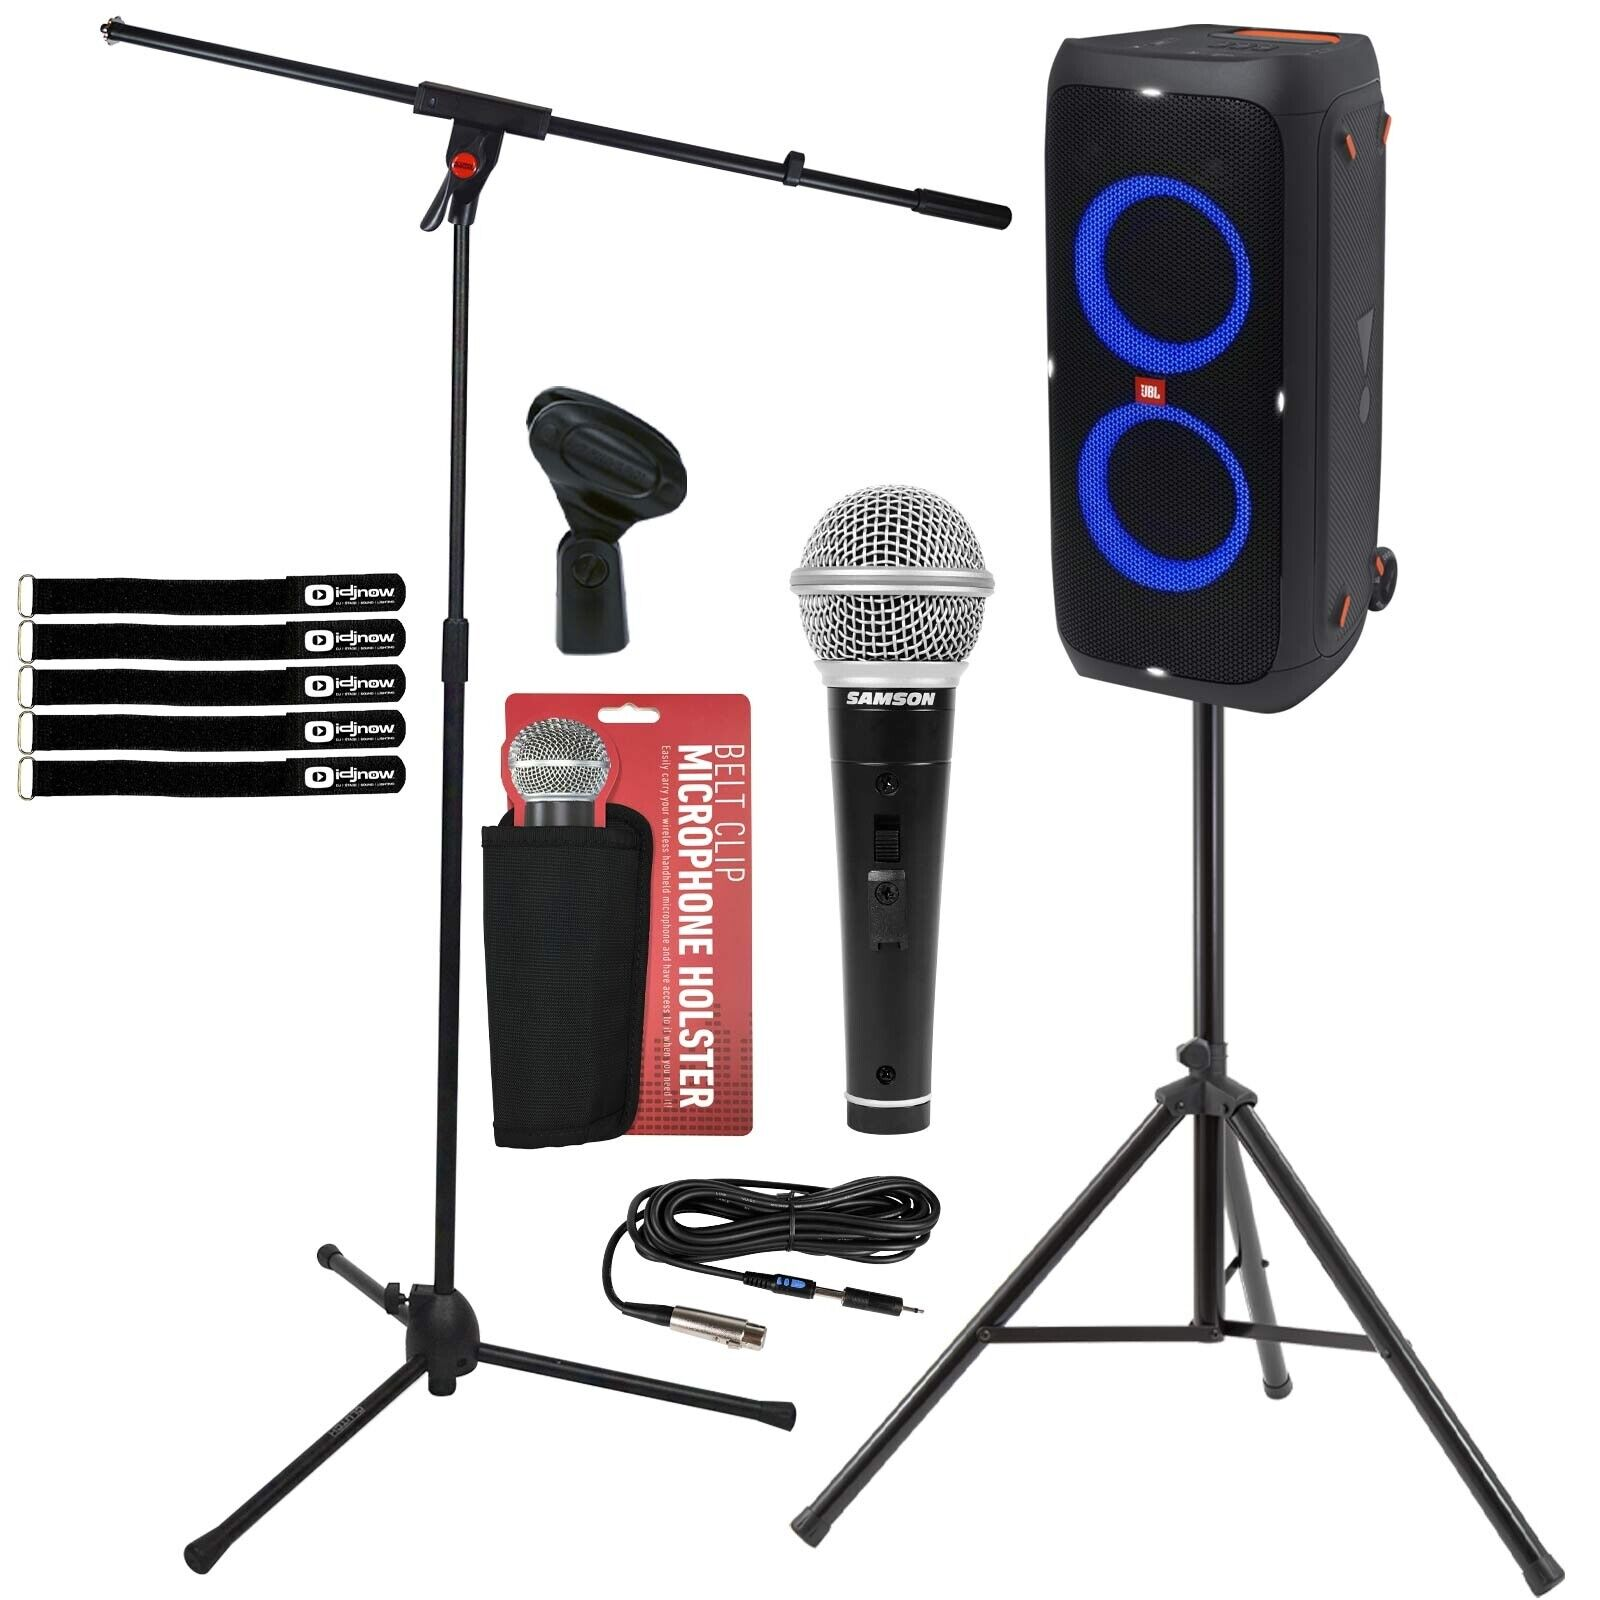 JBL Partybox 310 Rechargeable Bluetooth LED Karaoke Party Speaker w Stand & Mic. Buy it now for 605.60